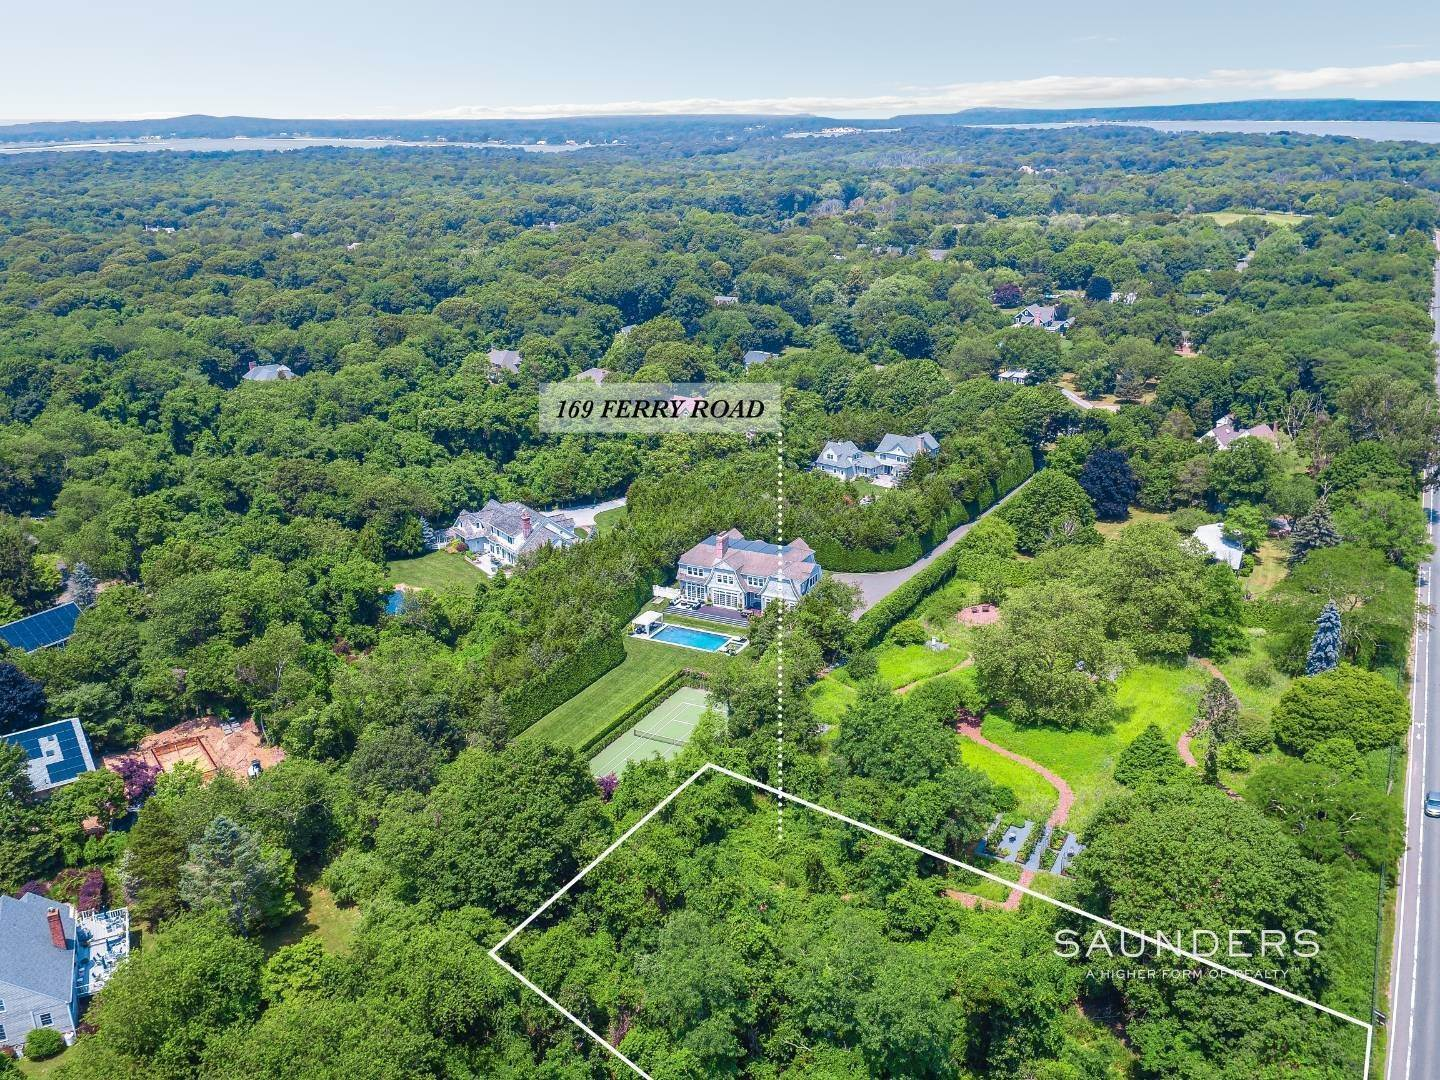 Land for Sale at Sag Harbor Building Lot Close To Village 169 Ferry Road, Sag Harbor, Southampton Town, NY 11963